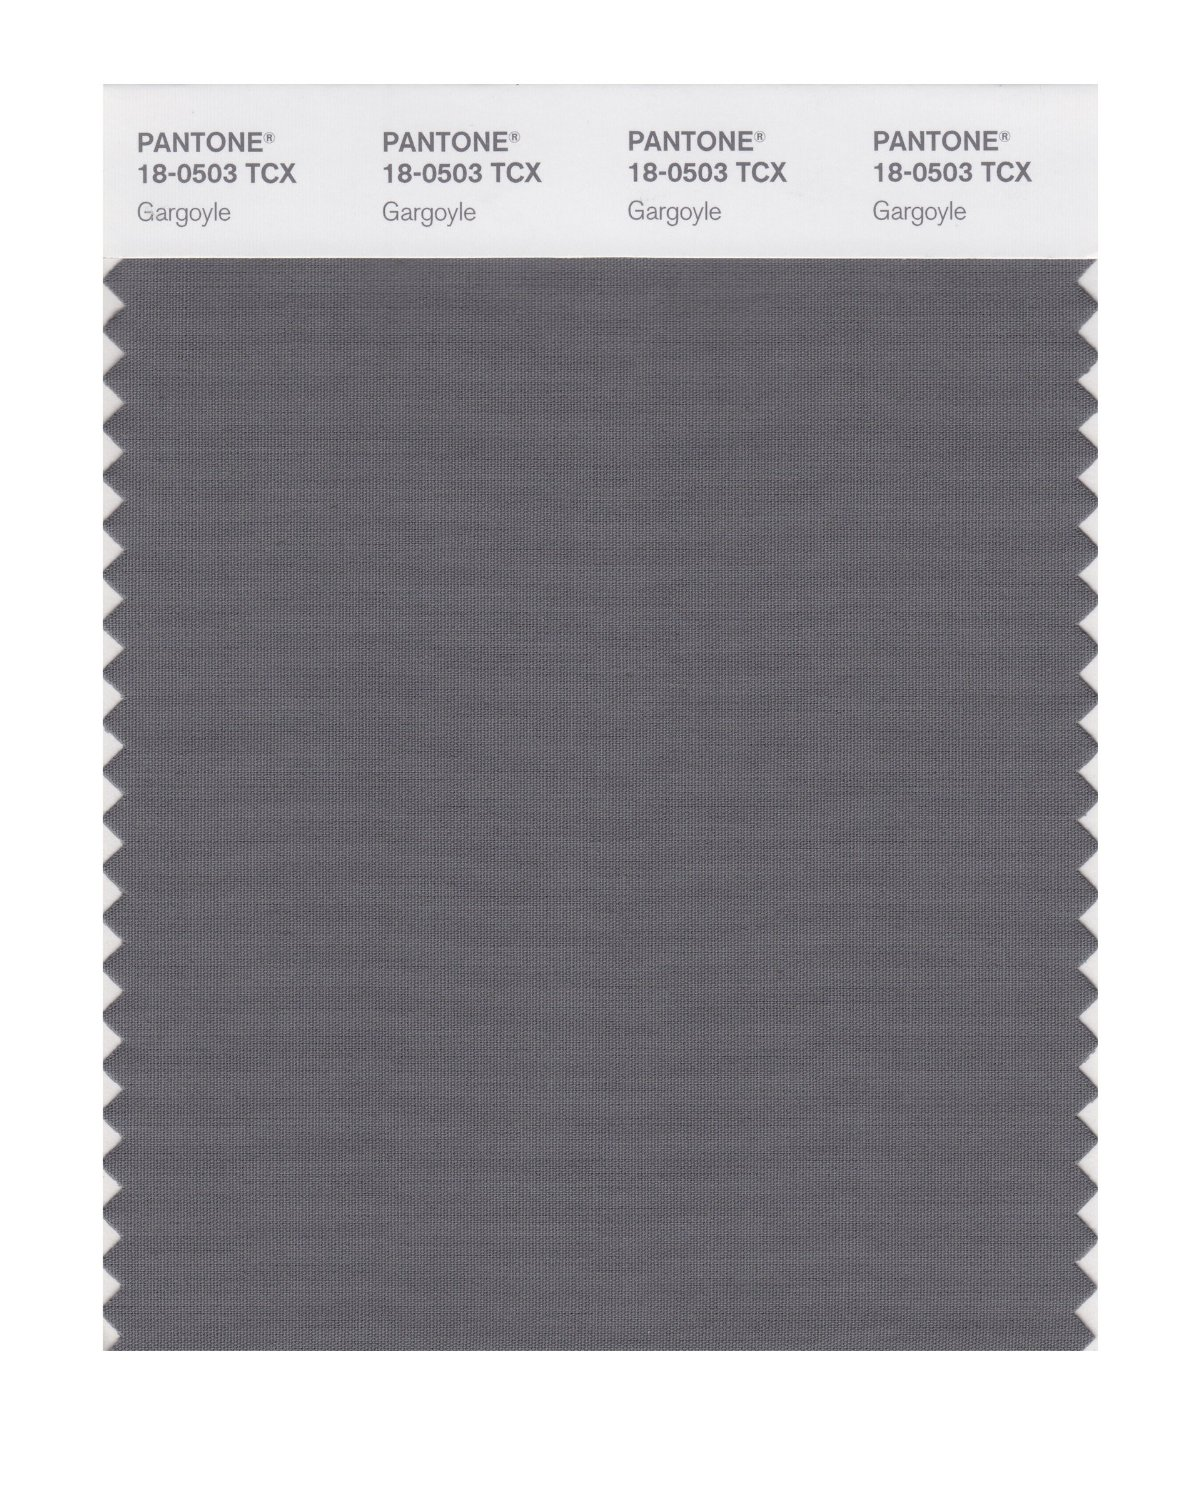 Pantone Smart Swatch 18-0503 Gargoyle